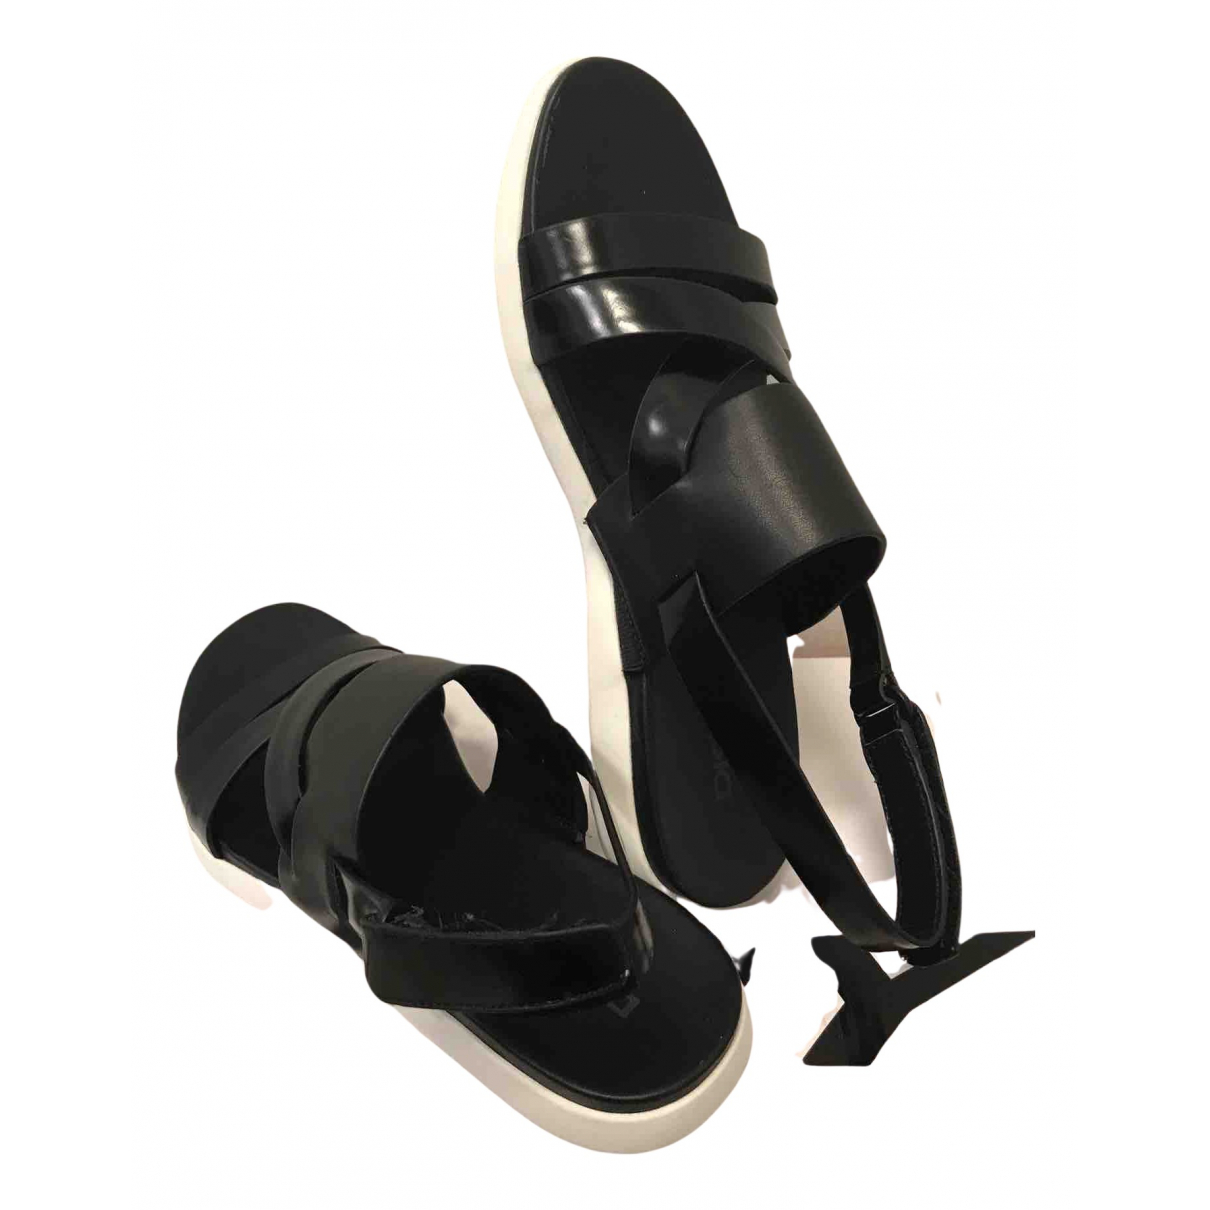 Dkny N Black Leather Sandals for Women 37.5 EU